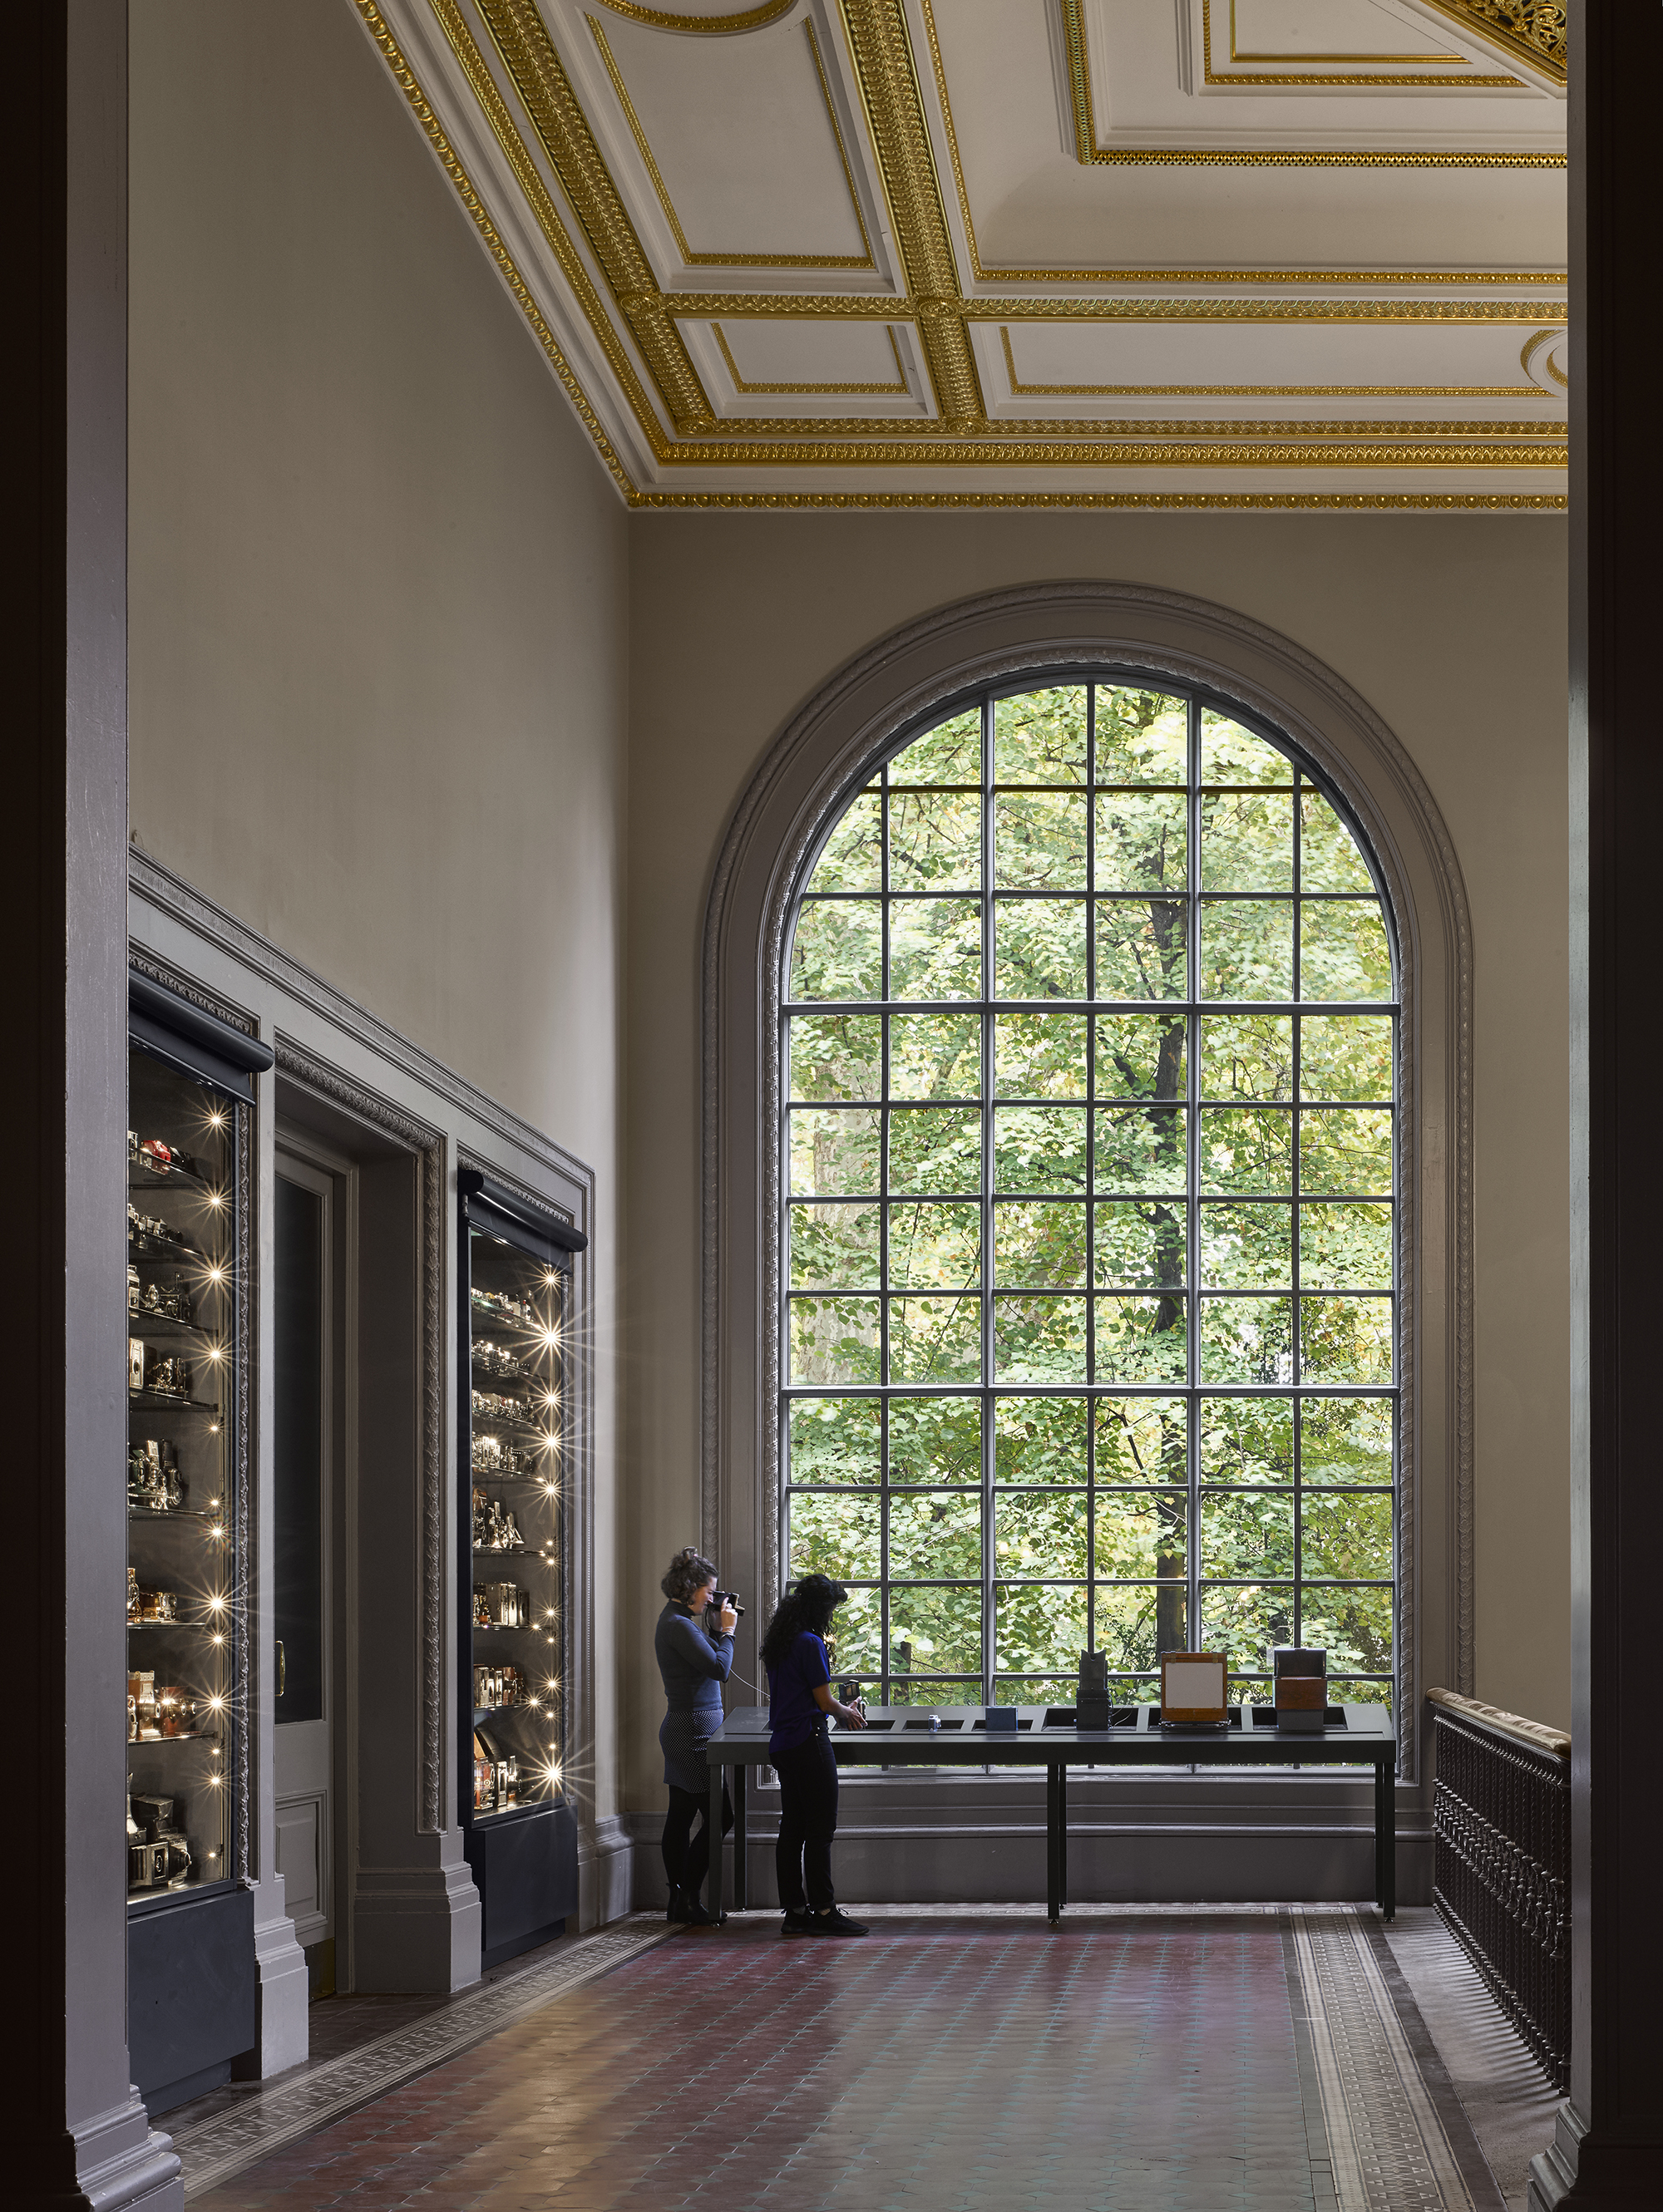 V&A Photography Centre – V&A Photography Centre – entrance landing, display cases, and camera handling table, Gallery 108 © Will Pryce